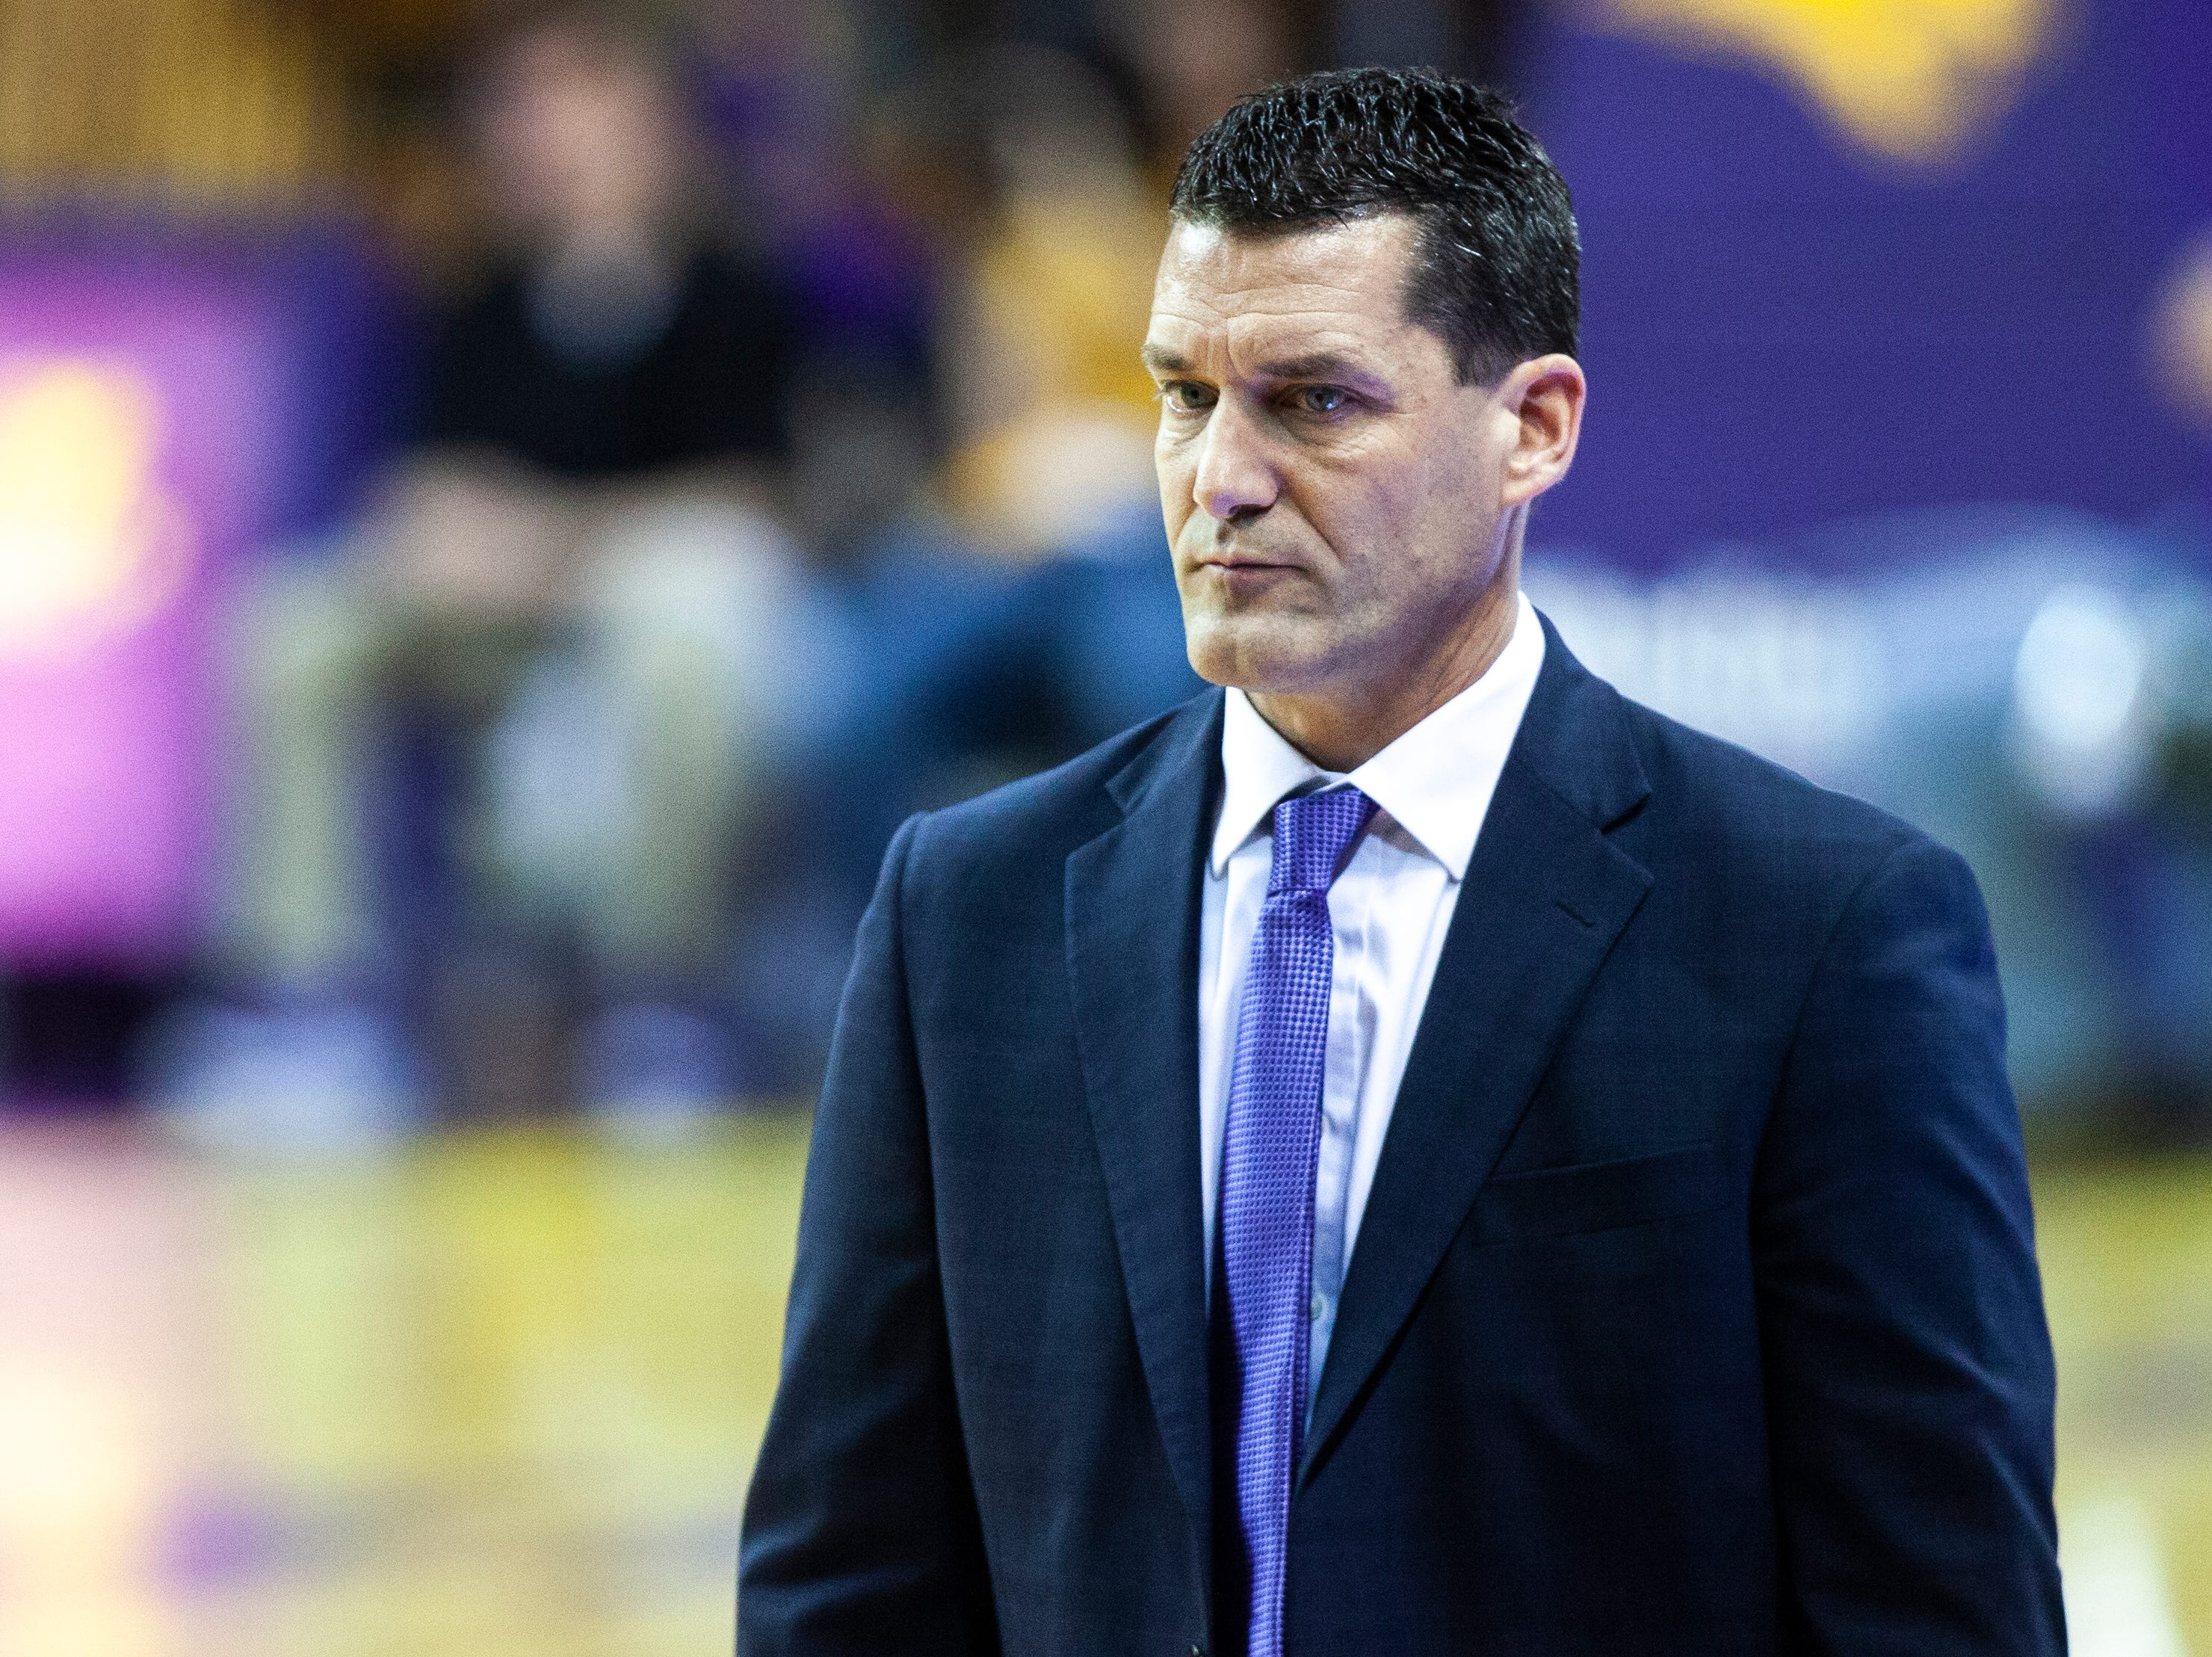 Northern Iowa head coach Ben Jacobson walks the baseline during a NCAA Missouri Valley Conference men's basketball game on Saturday, Jan. 5, 2019, at the McLeod Center in Cedar Falls, Iowa.